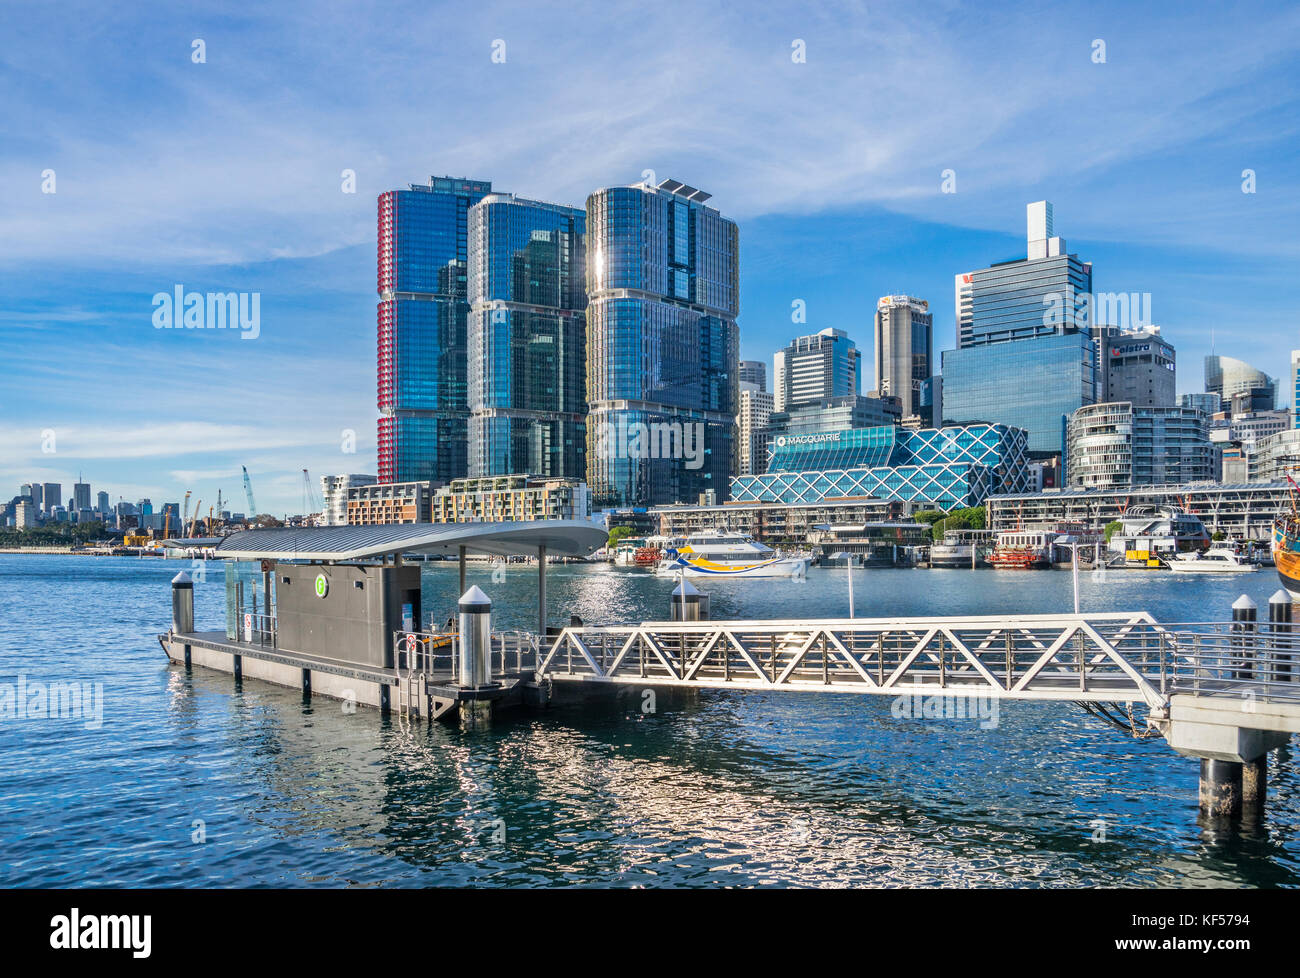 L'Australie, New South Wales, Sydney, vue sur Darling Harbour et la Barangaroo Tours International Quai de l'île Photo Stock